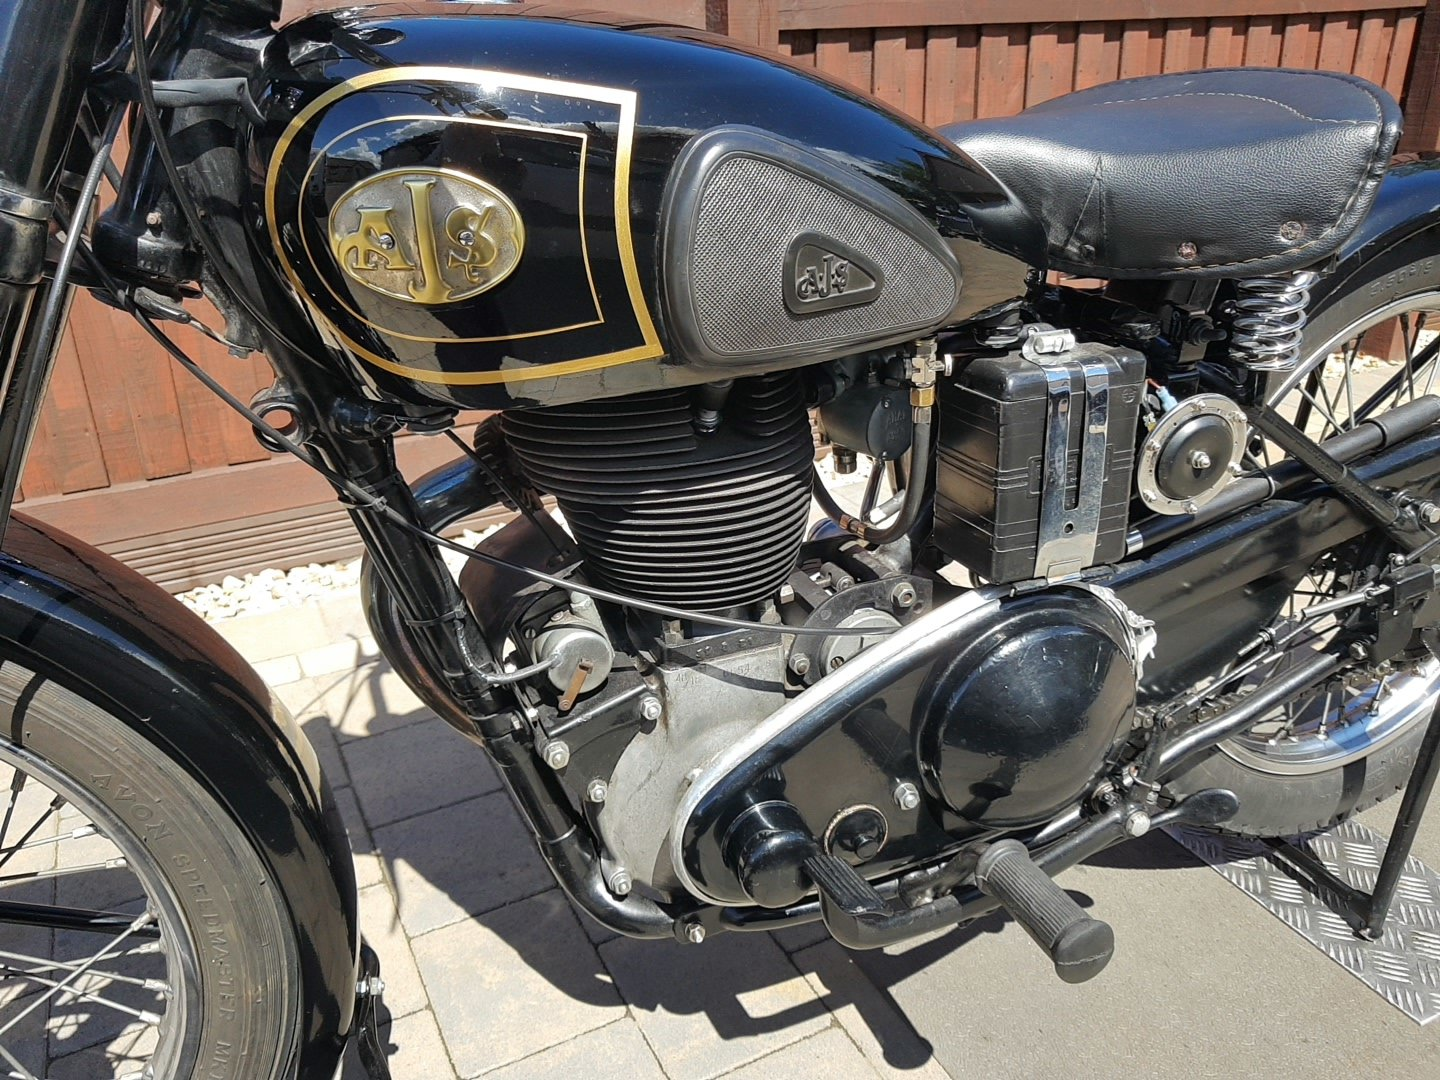 1948 AJS 500 single  For Sale (picture 3 of 6)